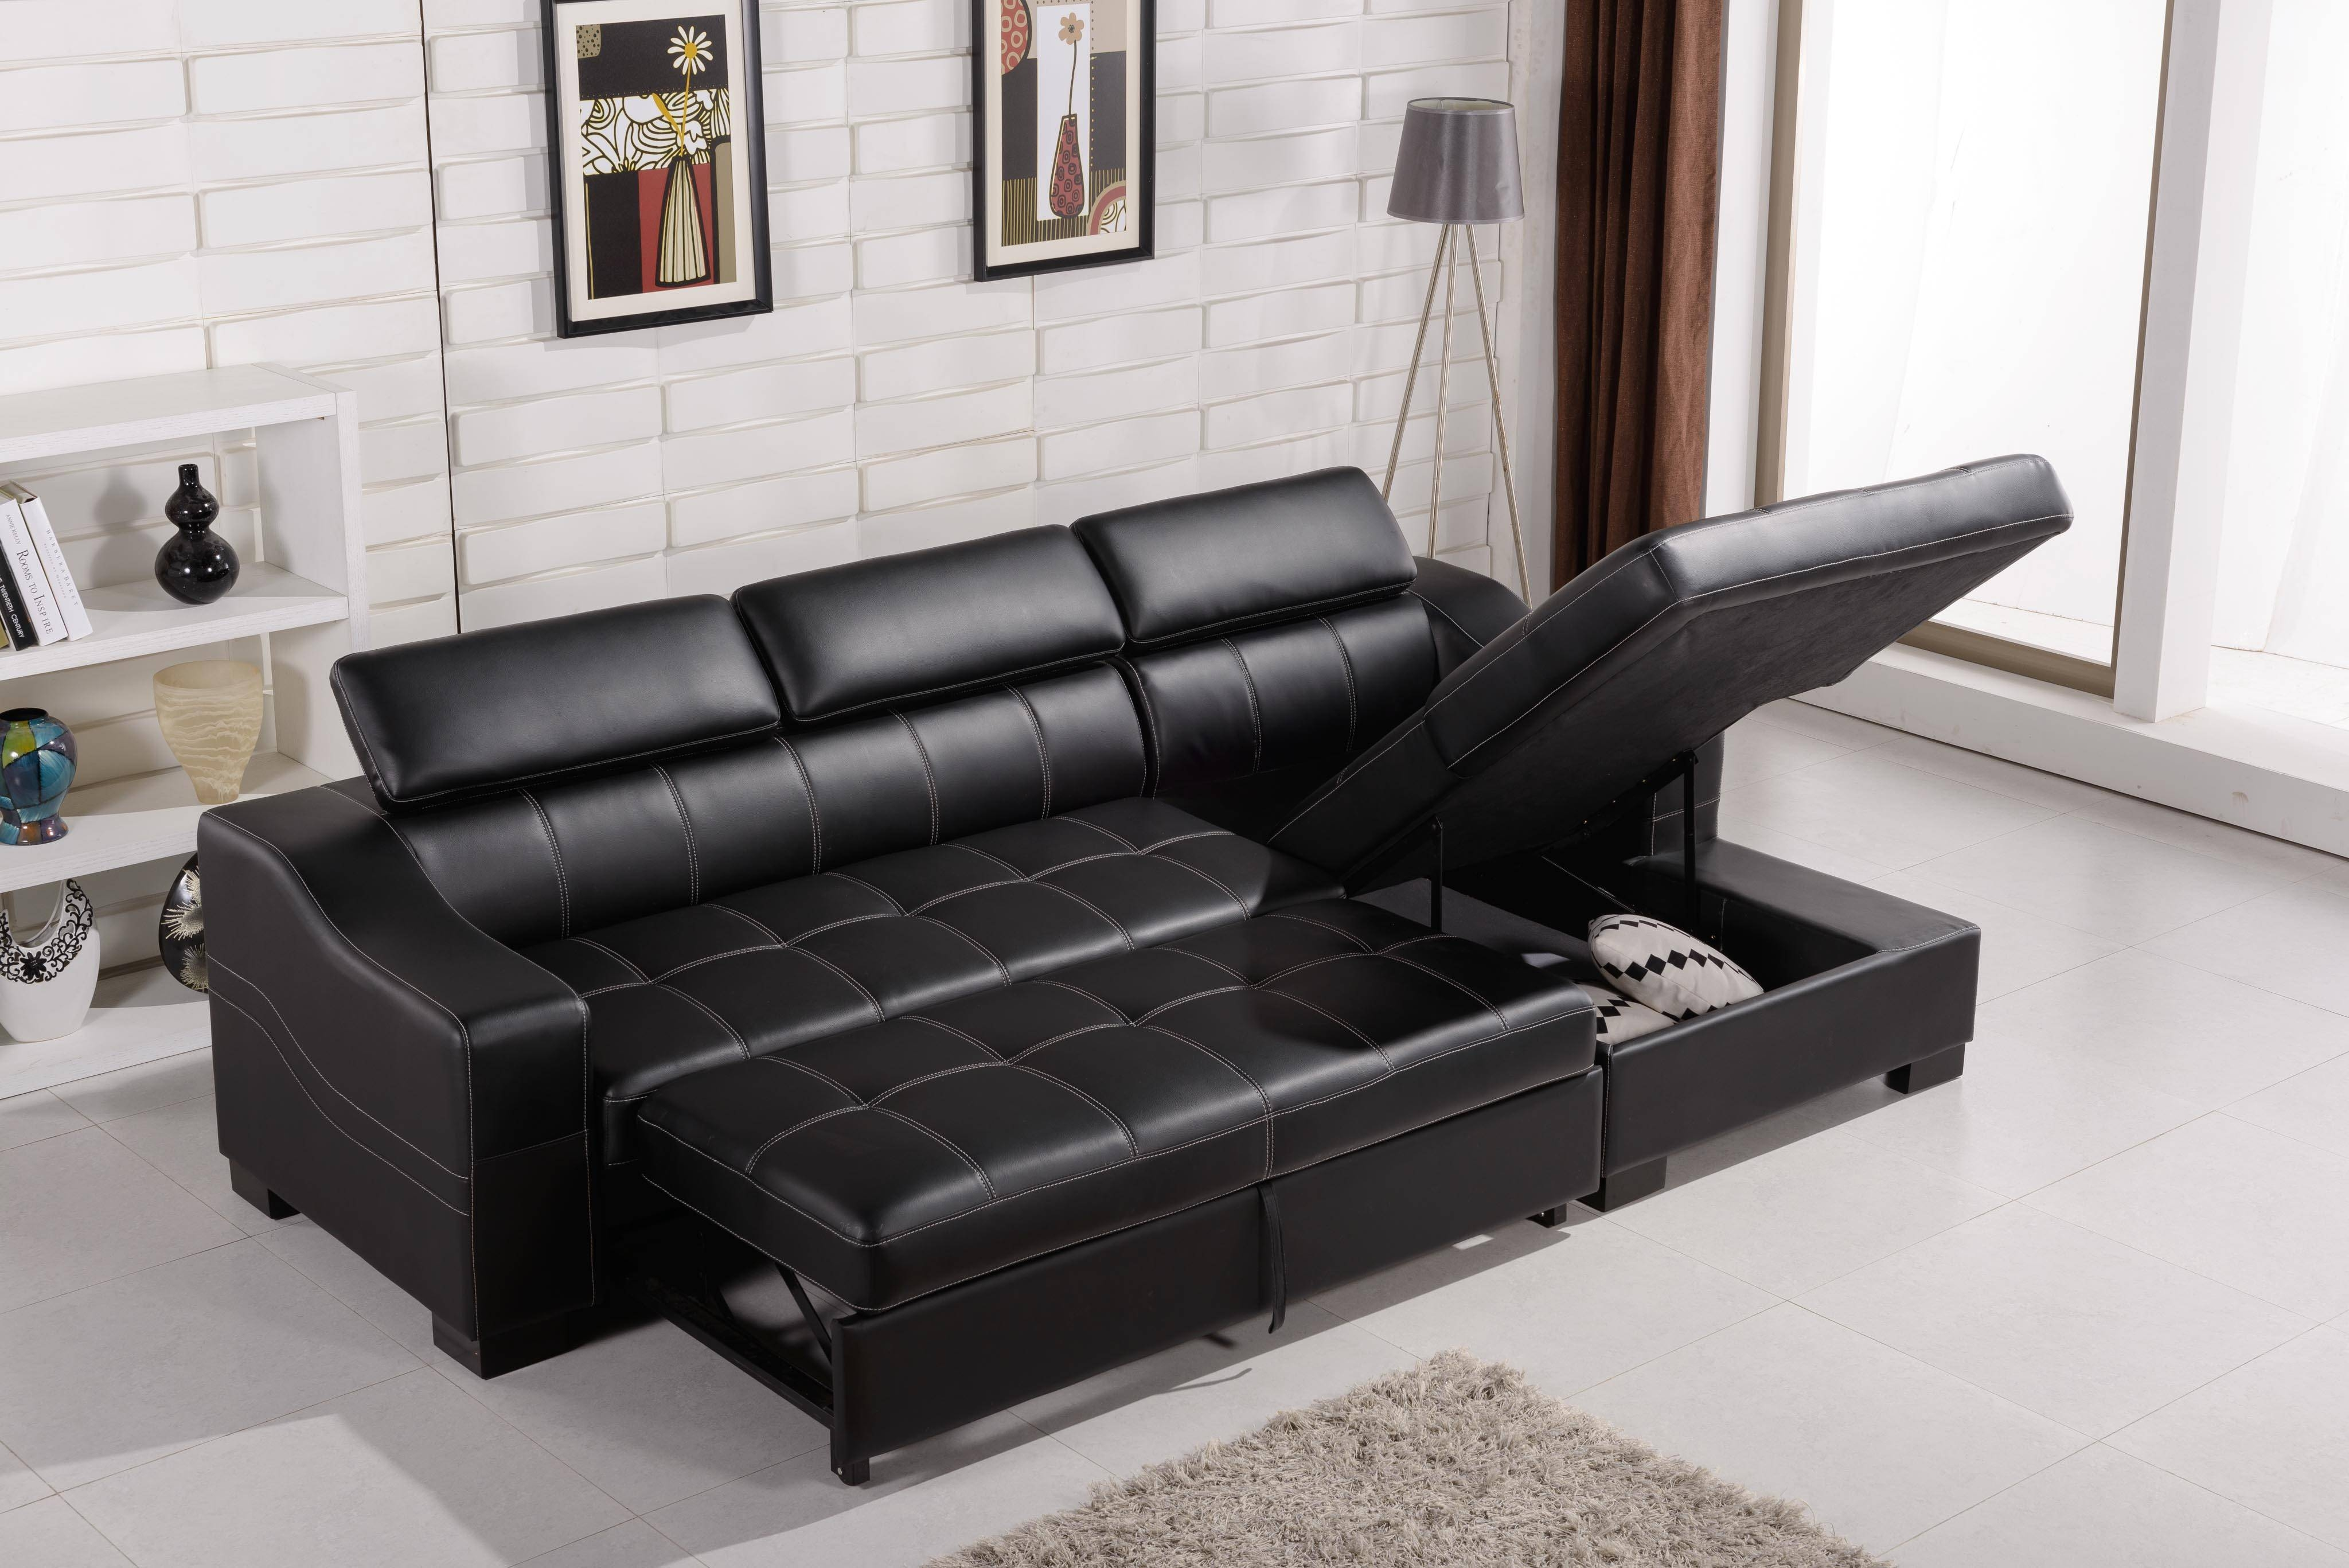 Sofas Center : Carlyle Sofa Beds Shop Reviews Shopcarlisle within Carlyle Sofa Beds (Image 13 of 15)